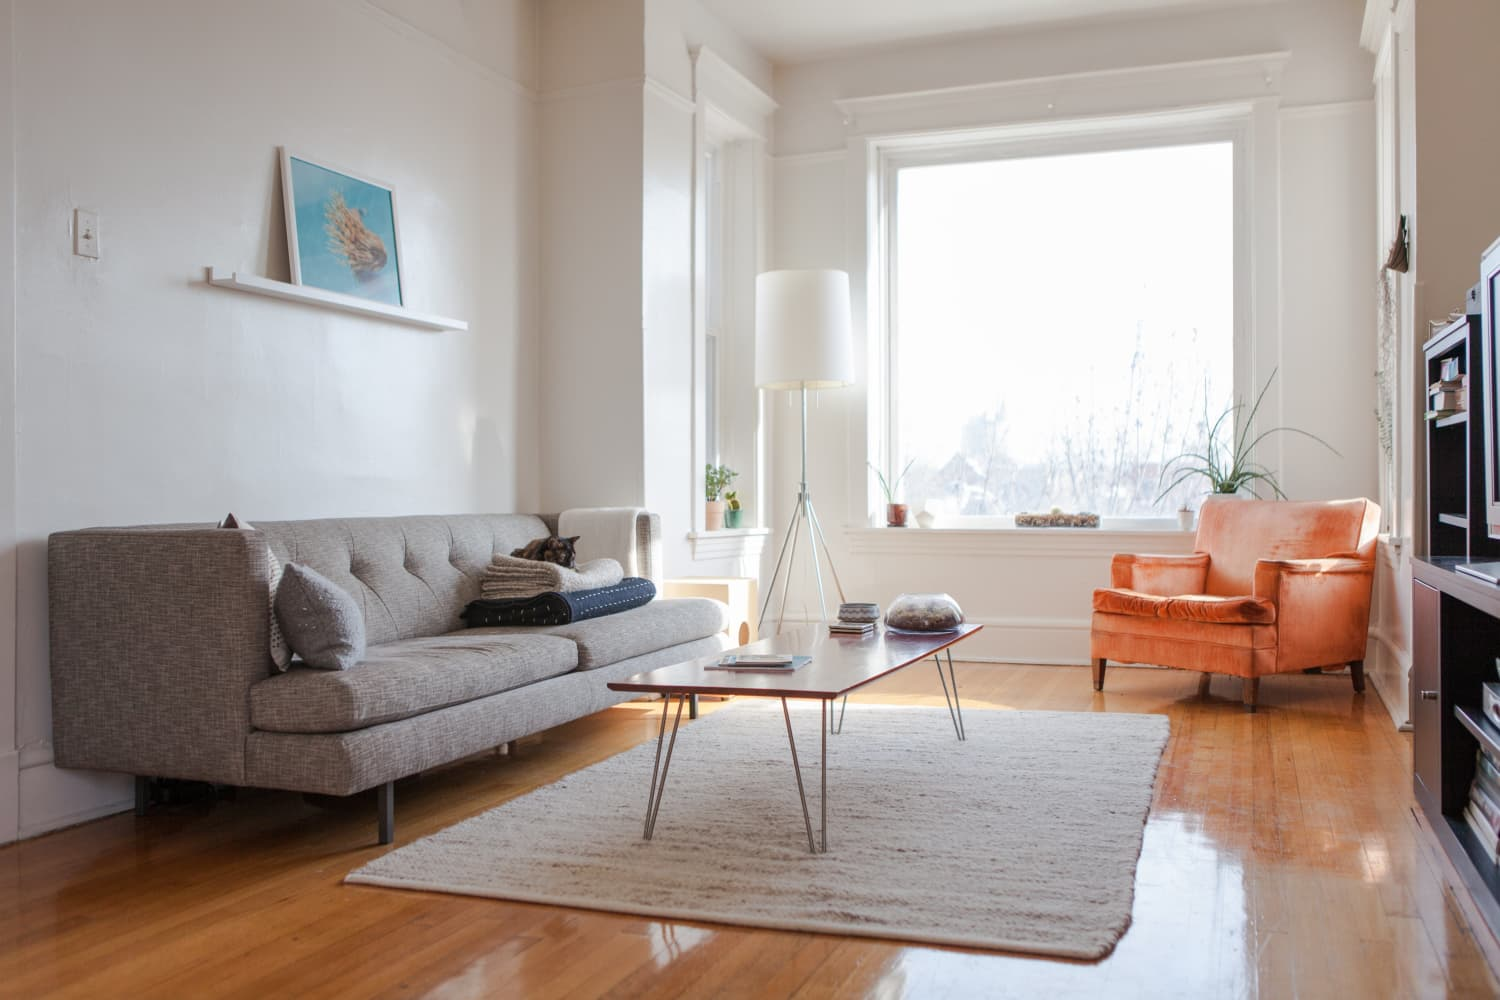 8 Solid-Color Rugs That Will Make Any Space Feel More Complete (and They're on Sale!)